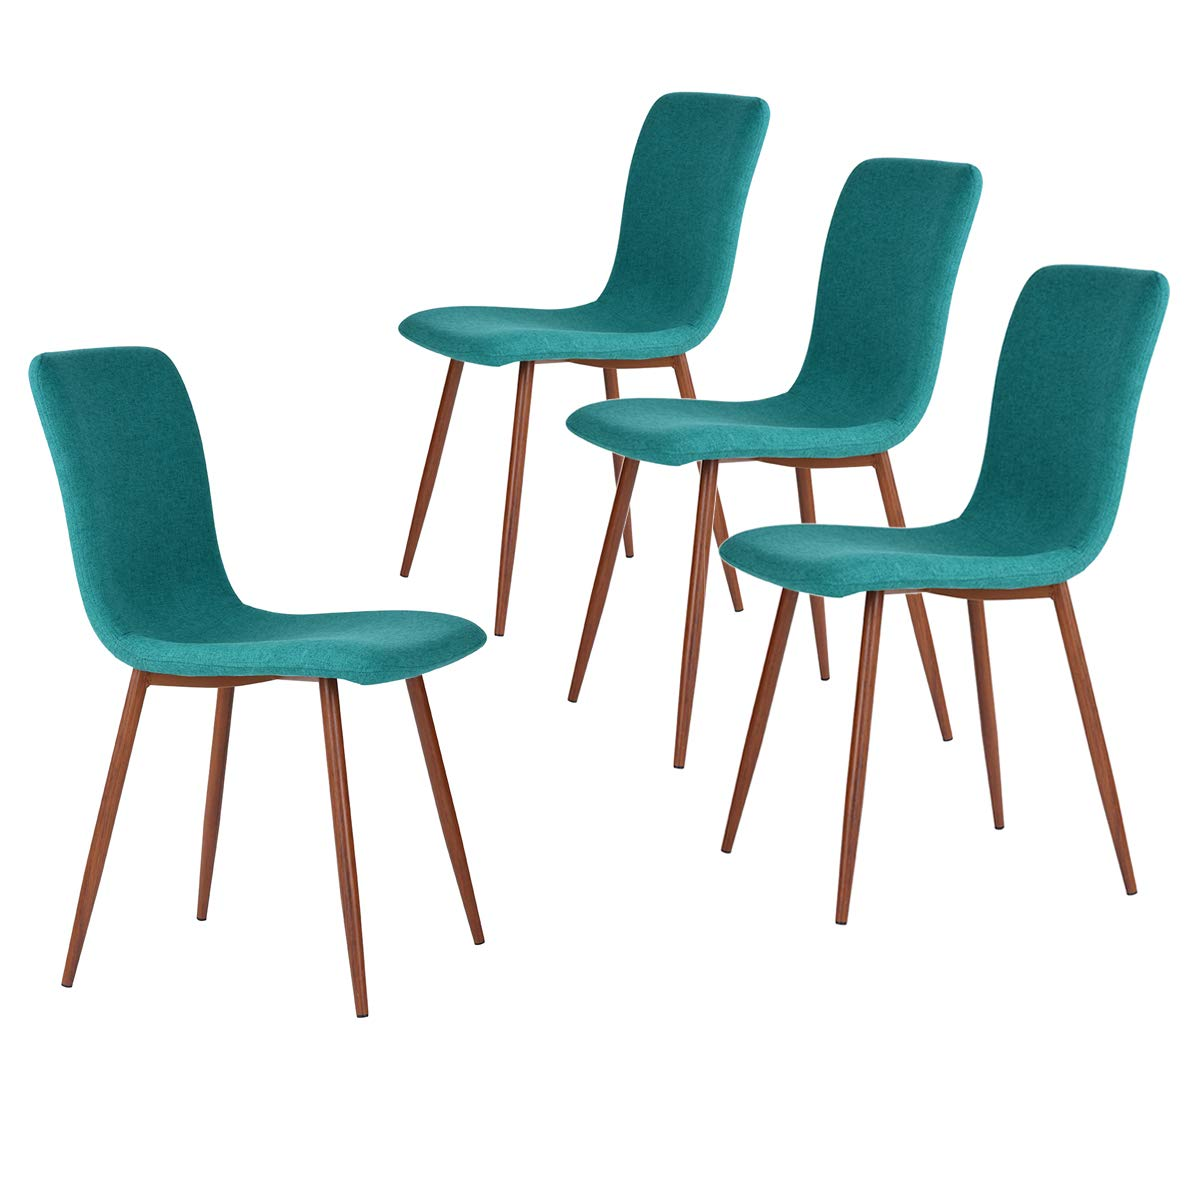 FurnitureR Dining Chair, Unique Stylem, Fabric Cushion, Natural Wood Legs, Armless, Green, 4 Piece